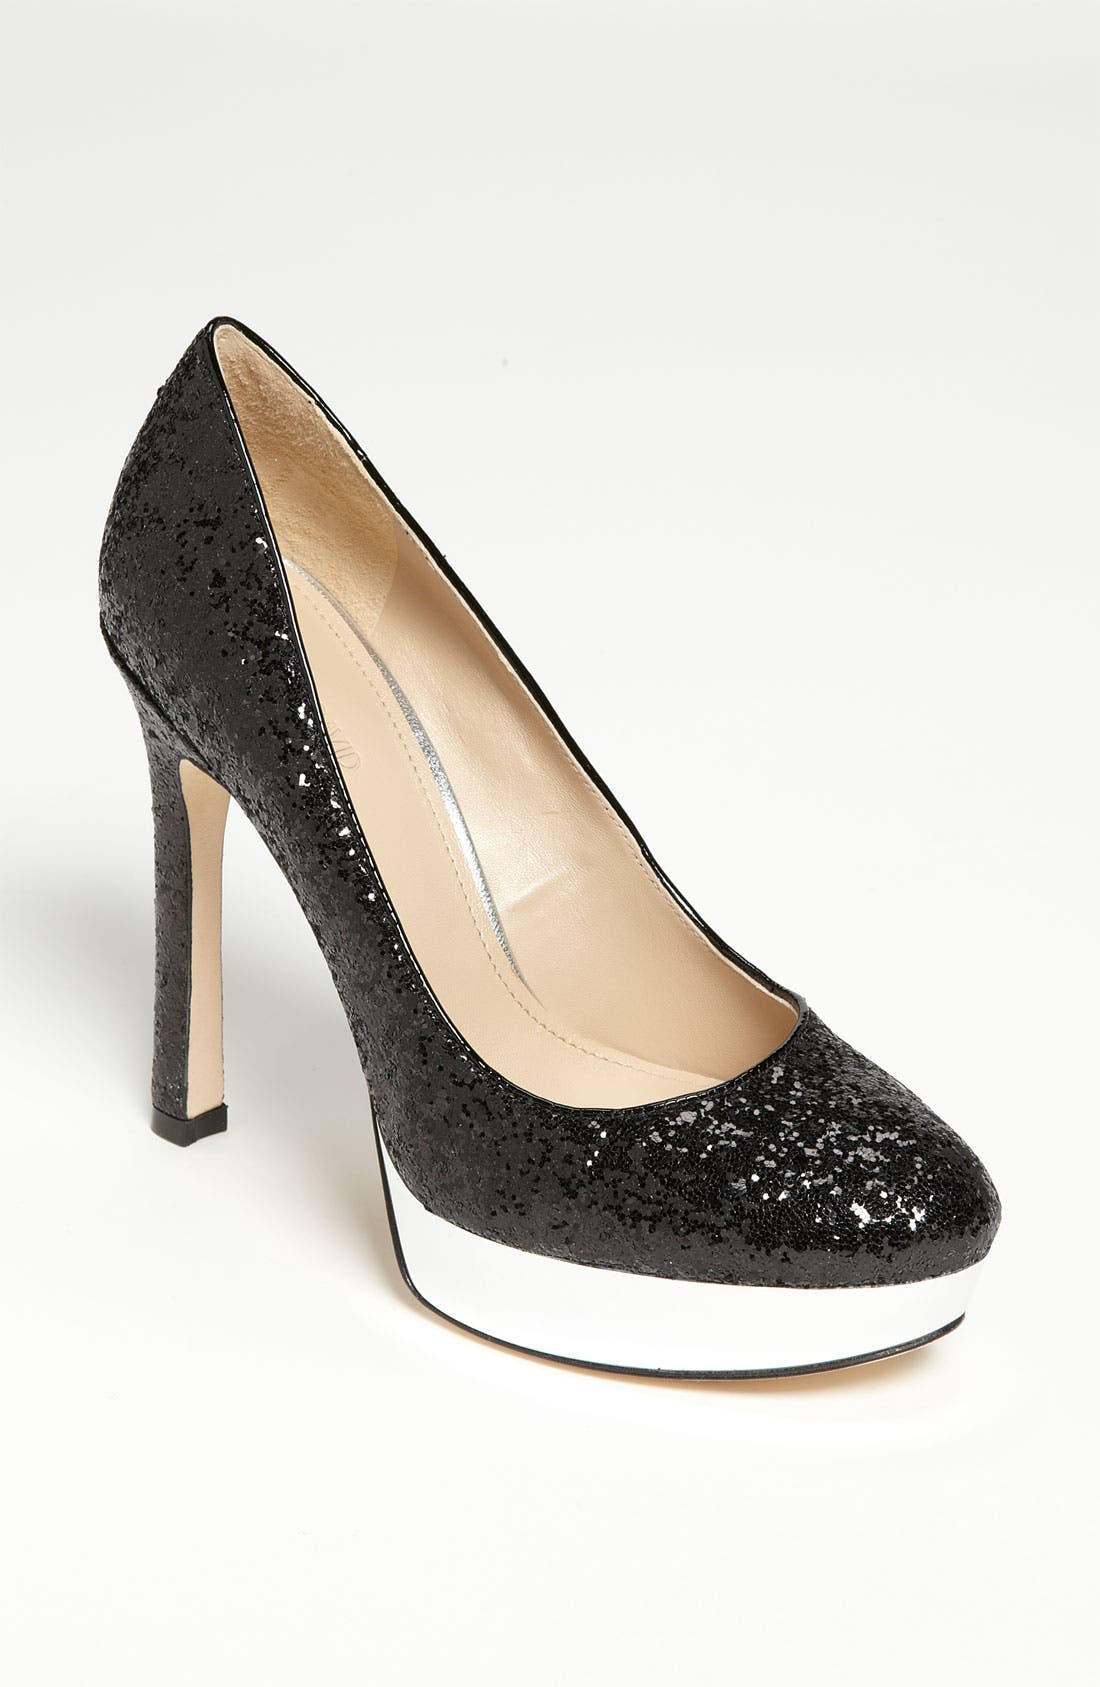 Main Image - Joan & David 'Quella' Pump